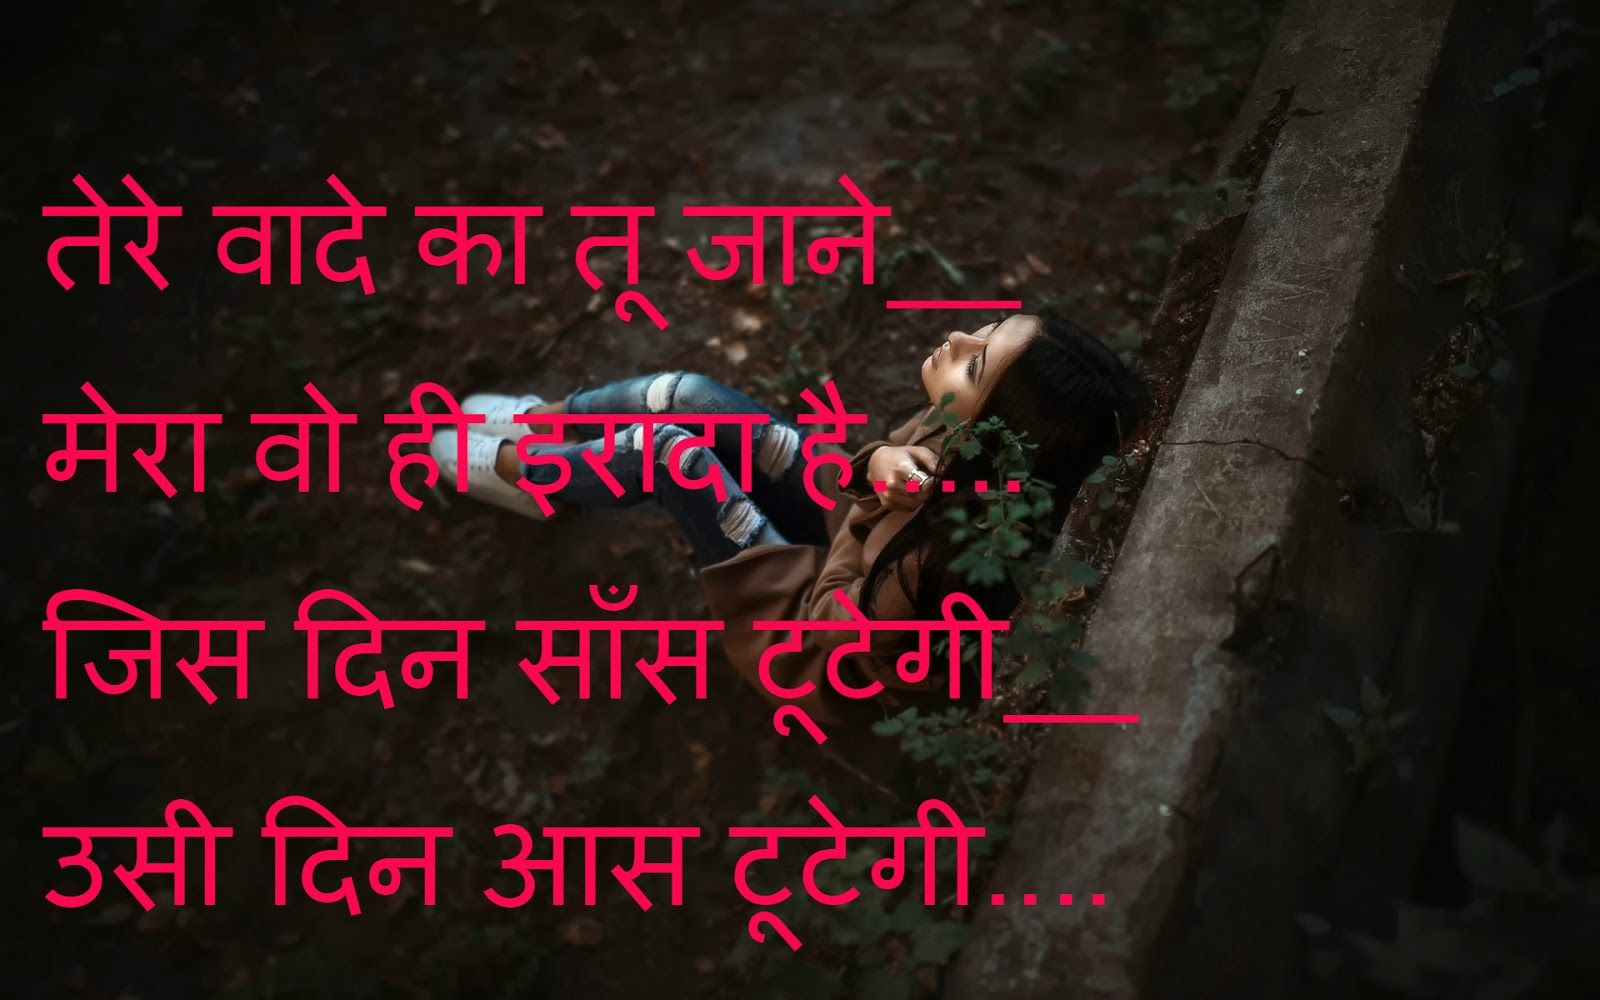 Lonely Sad Wallpapers In Hindi +11 You have already v...